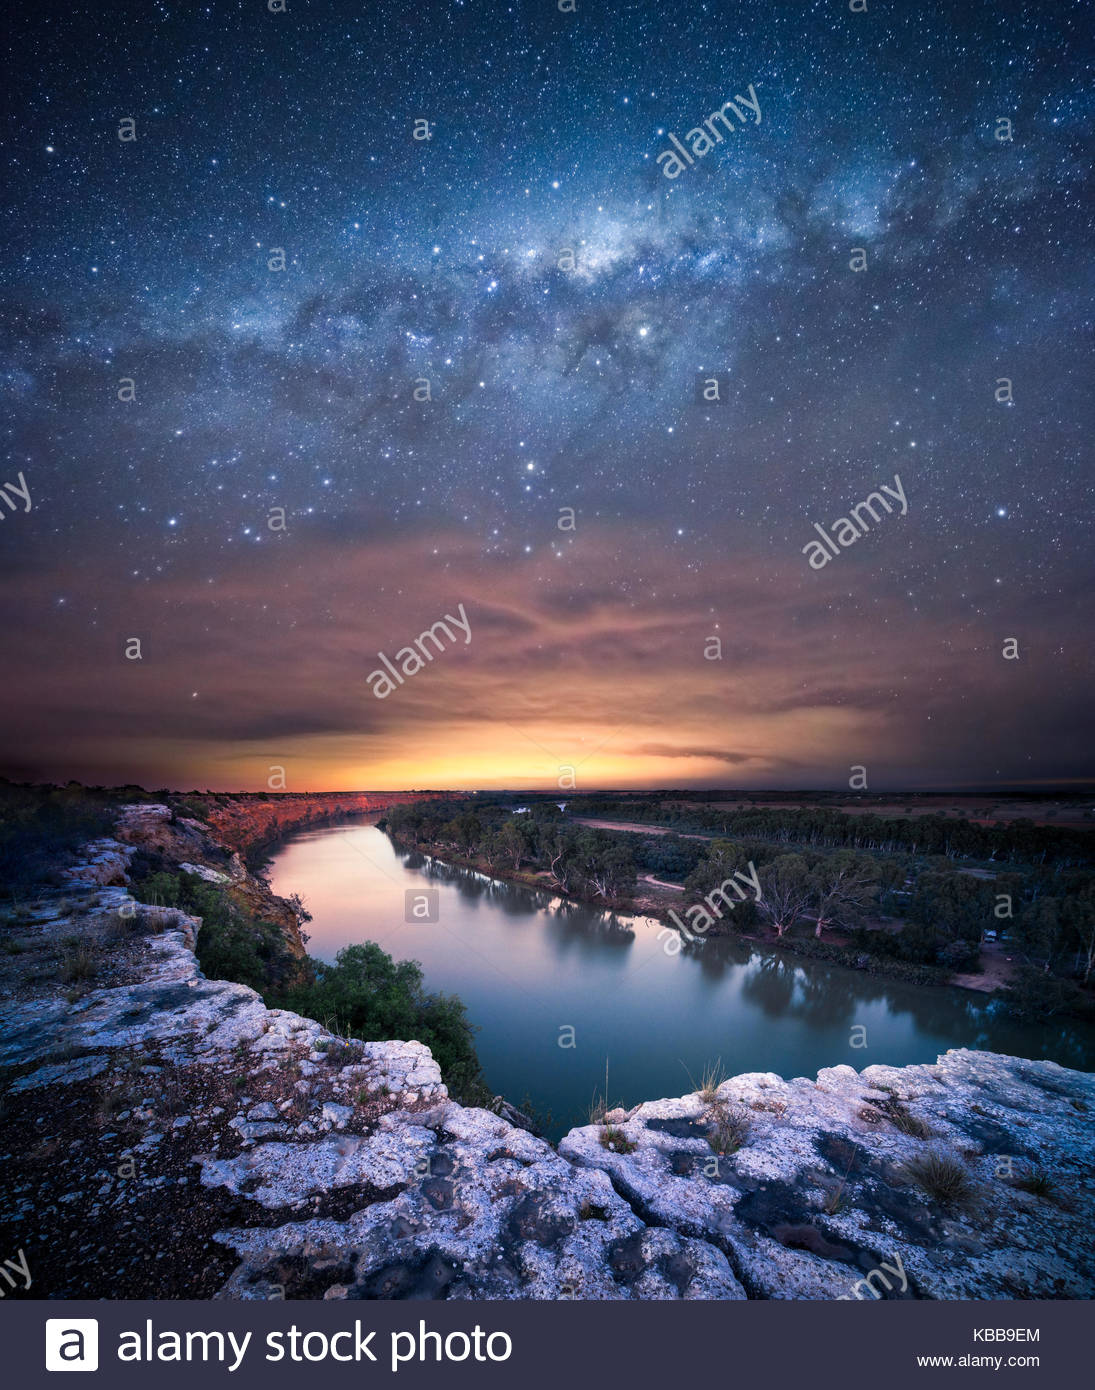 Milky Way over the Murray River - Stock Image